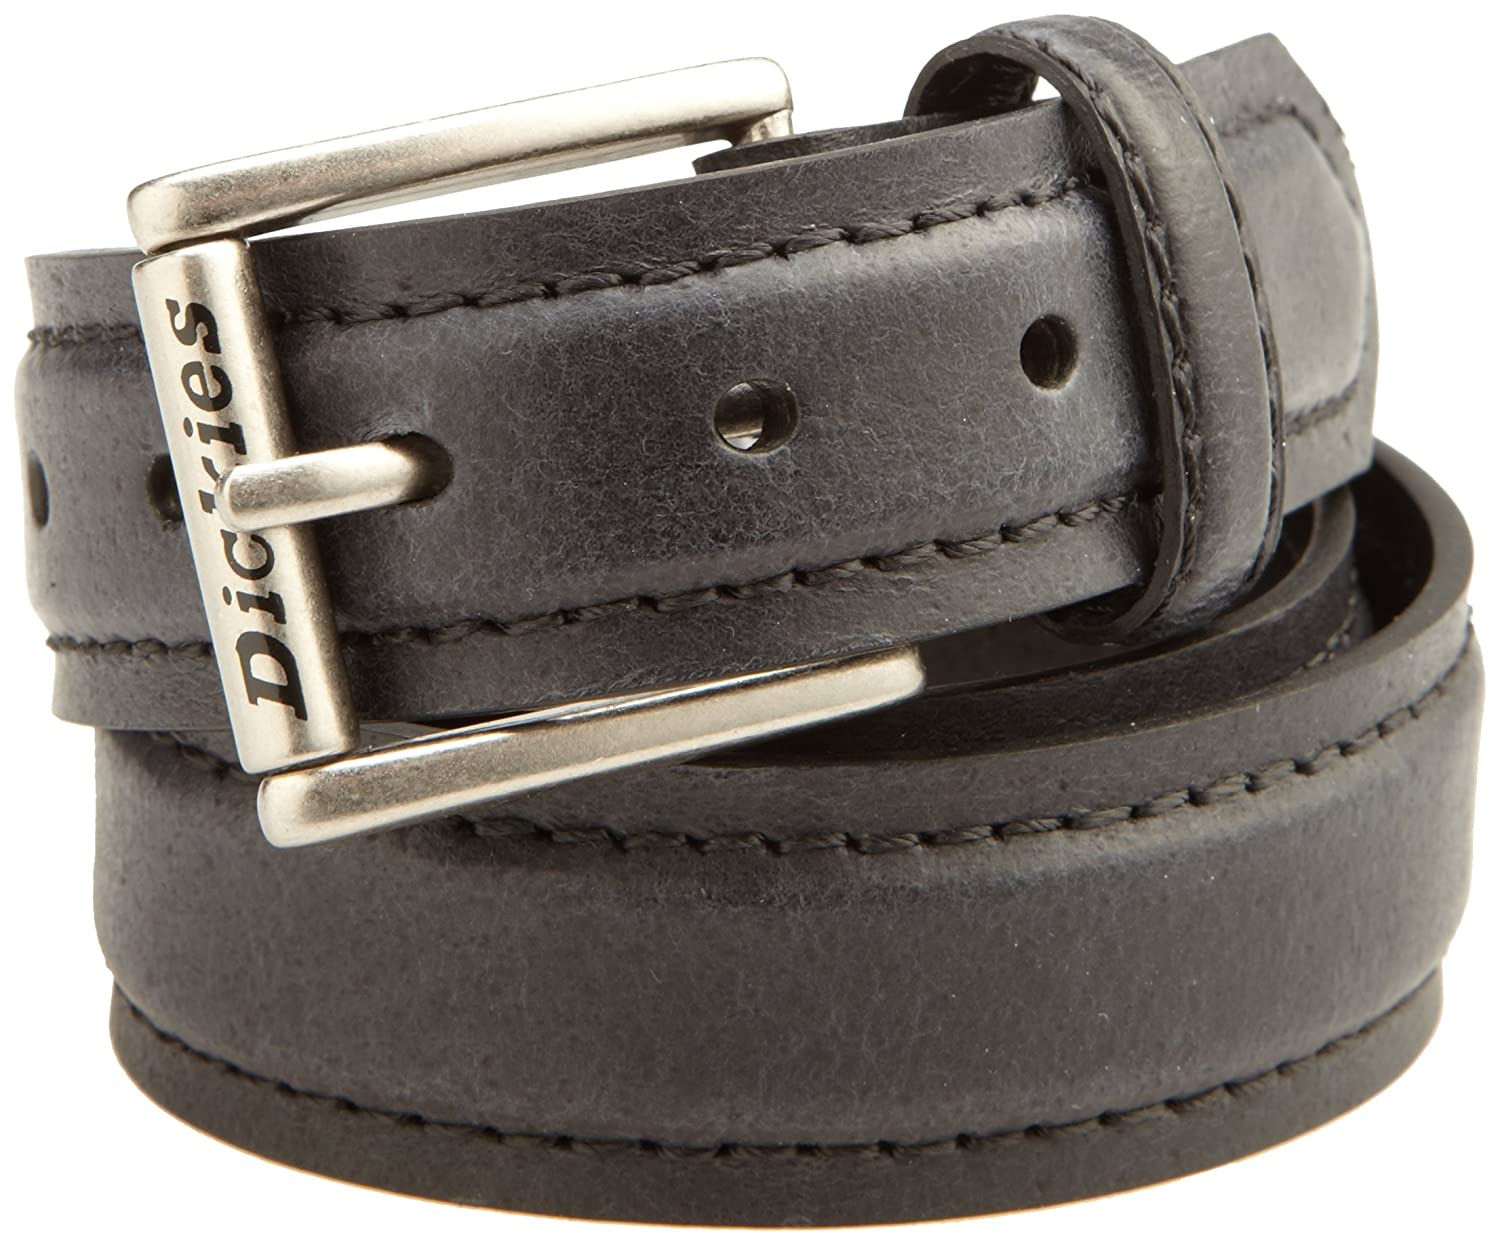 Dickies boys Casual Belt With Stitching Randa - Kids 12DI0207